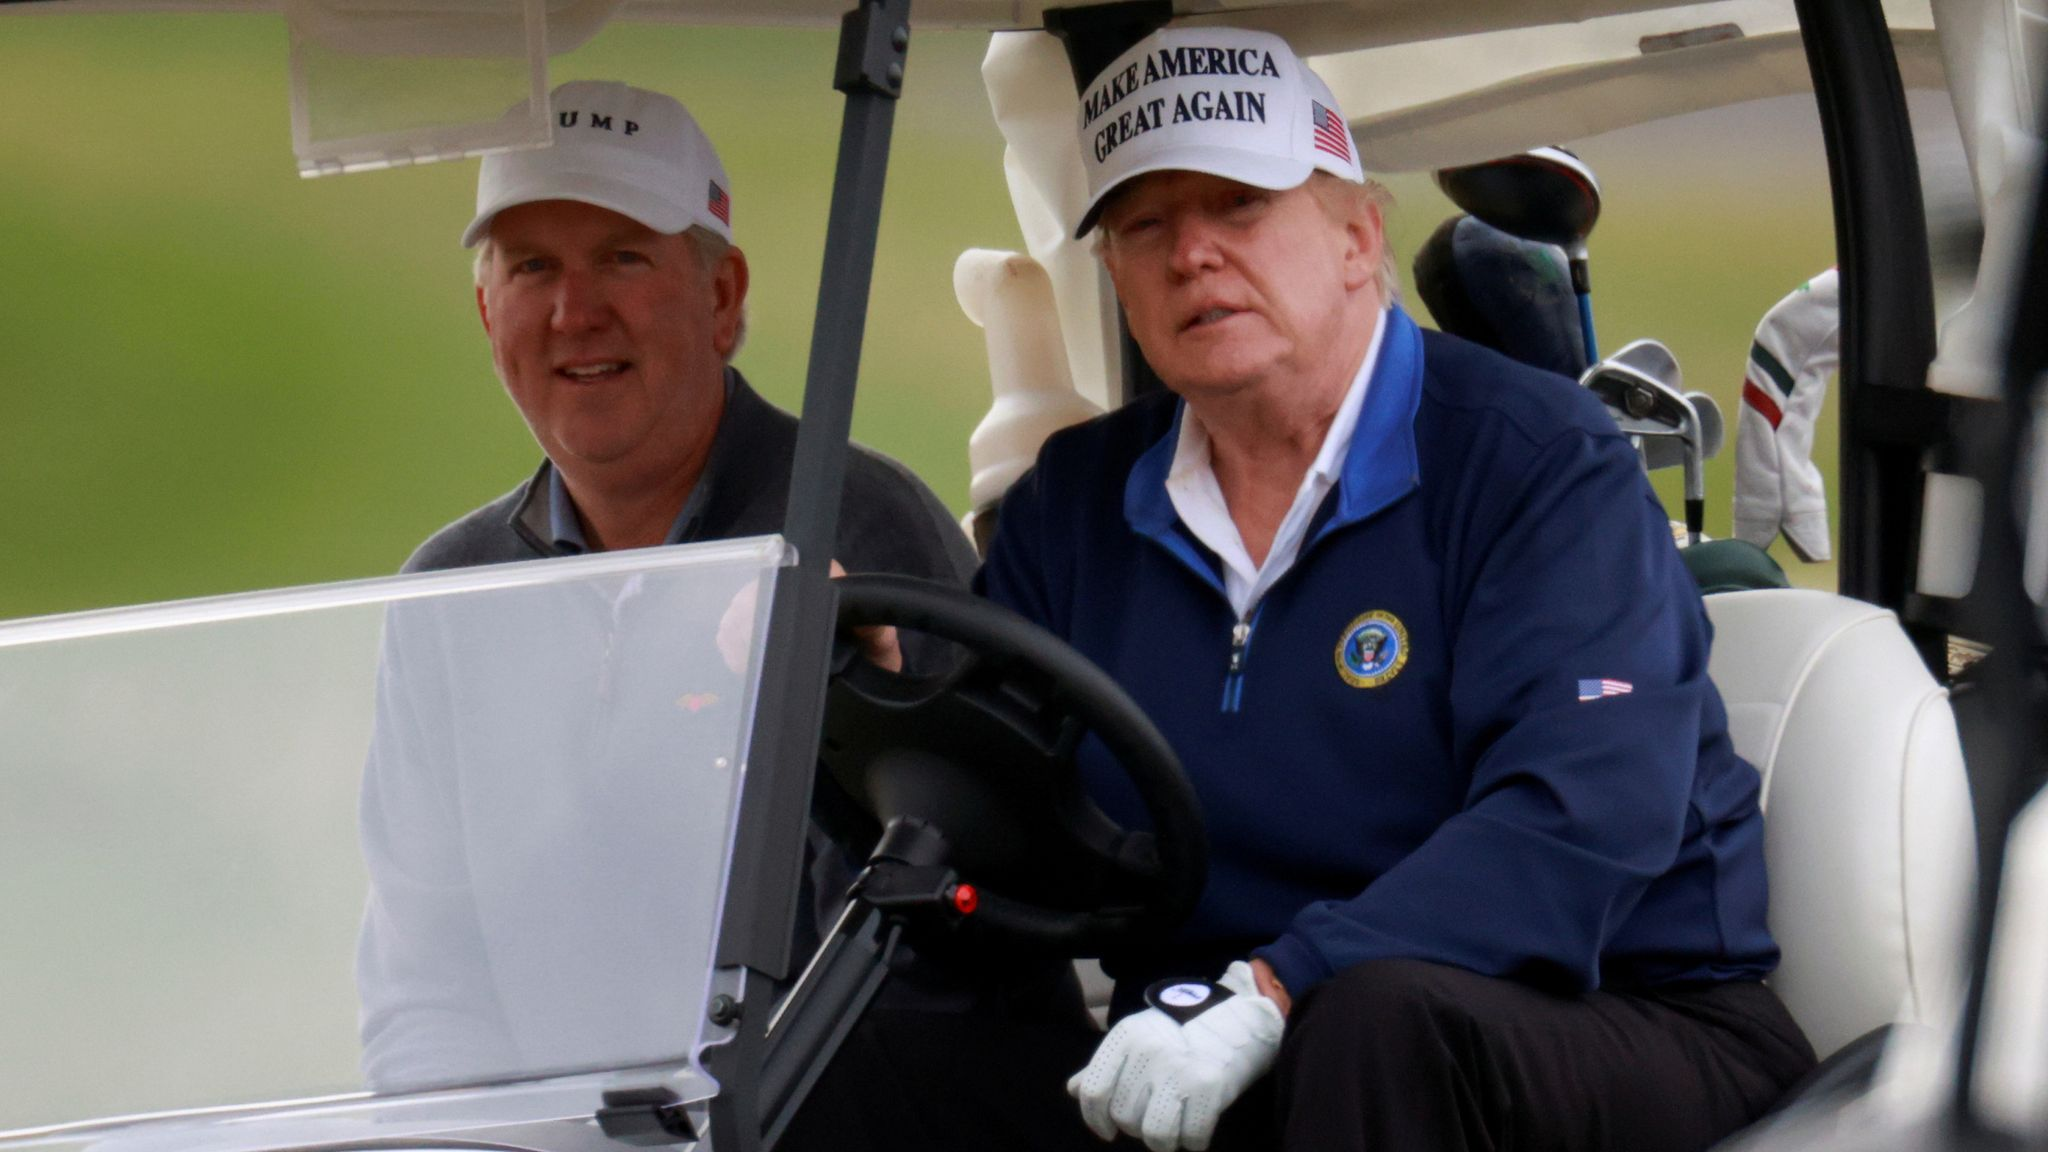 Trump golf course stripped of 2022 PGA Championship by tournament  organisers | US News | Sky News